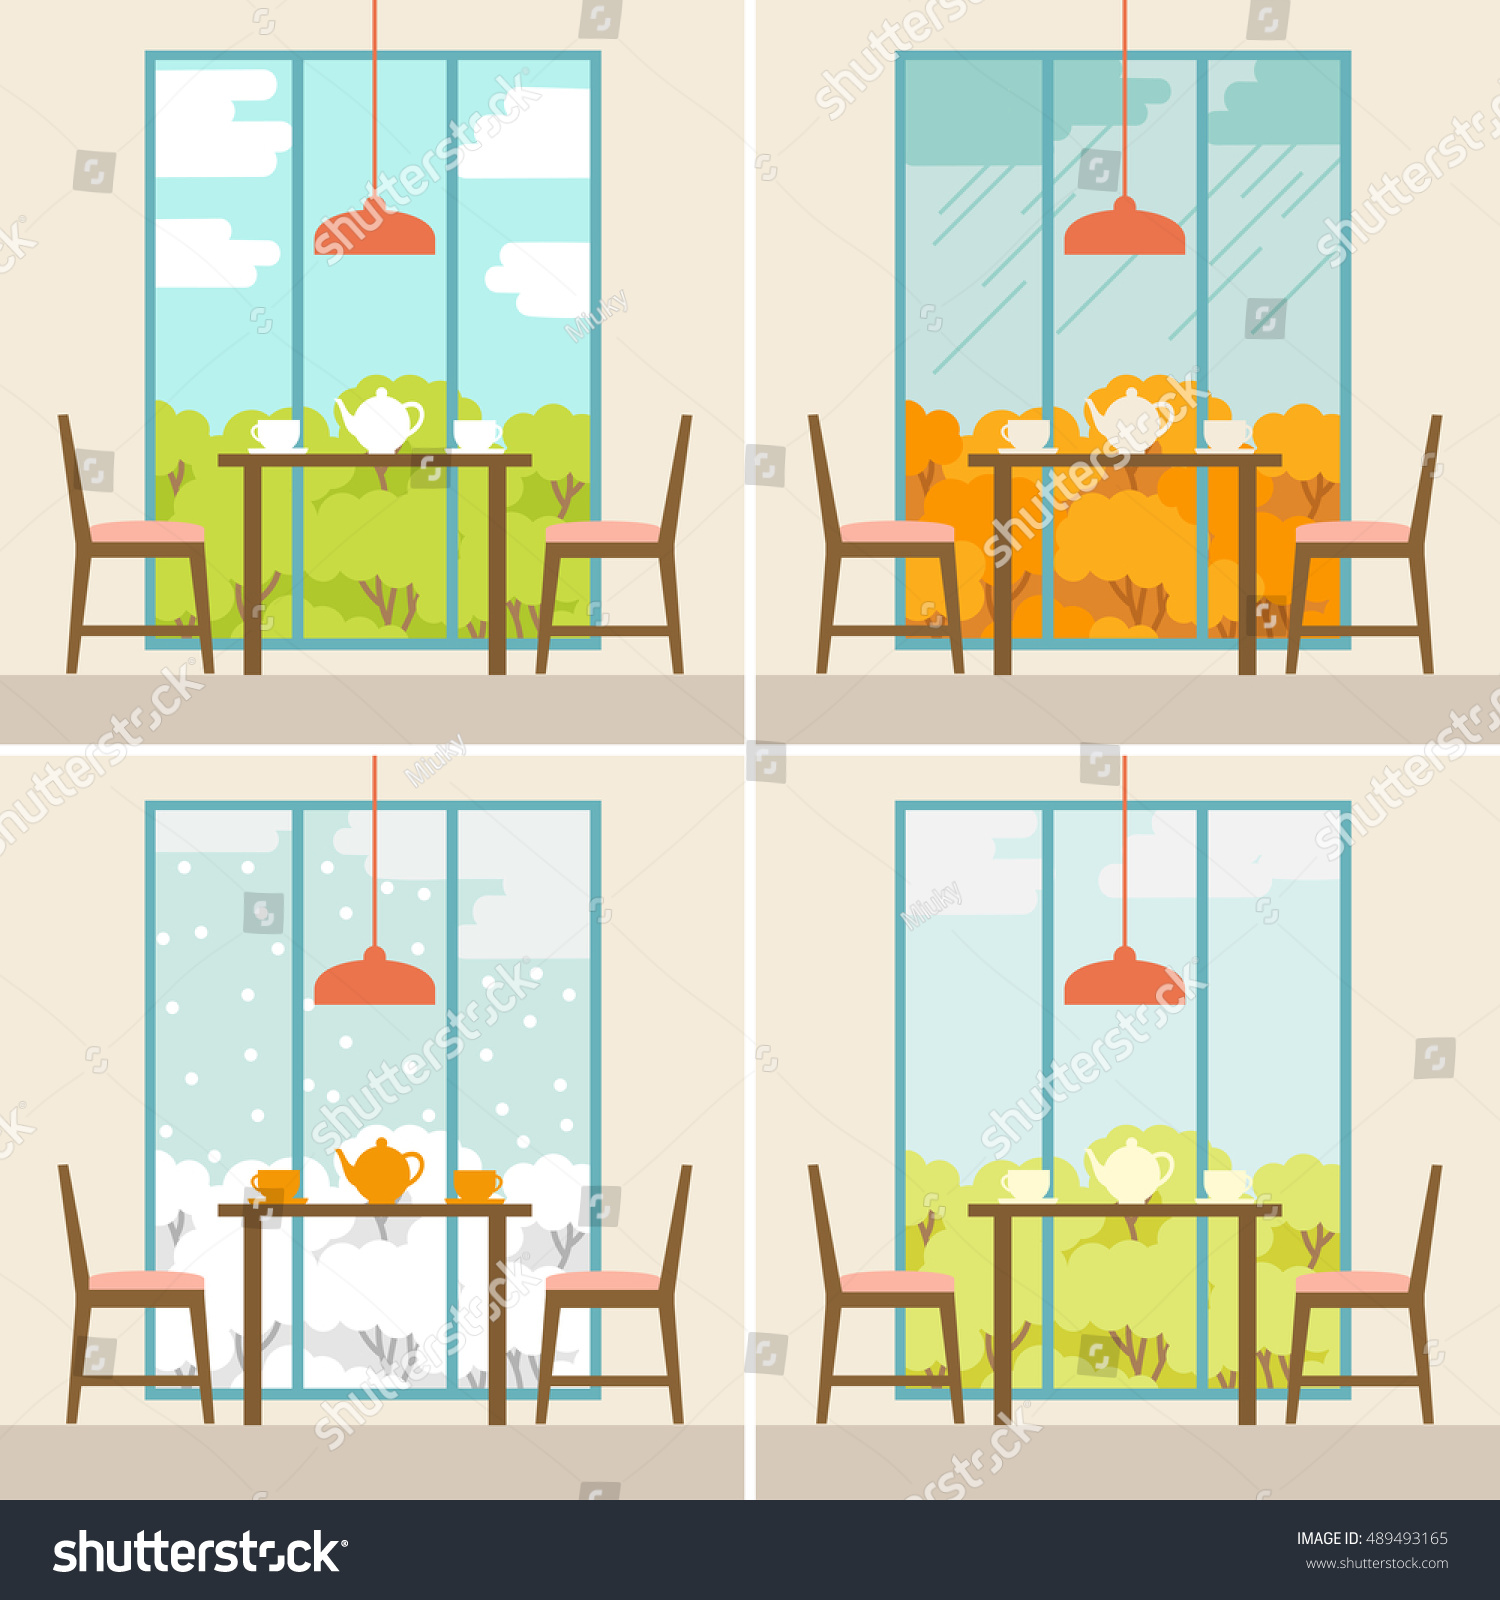 Vector Illustration Of The Dining Room In The Summer, Autumn, Winter, Spring